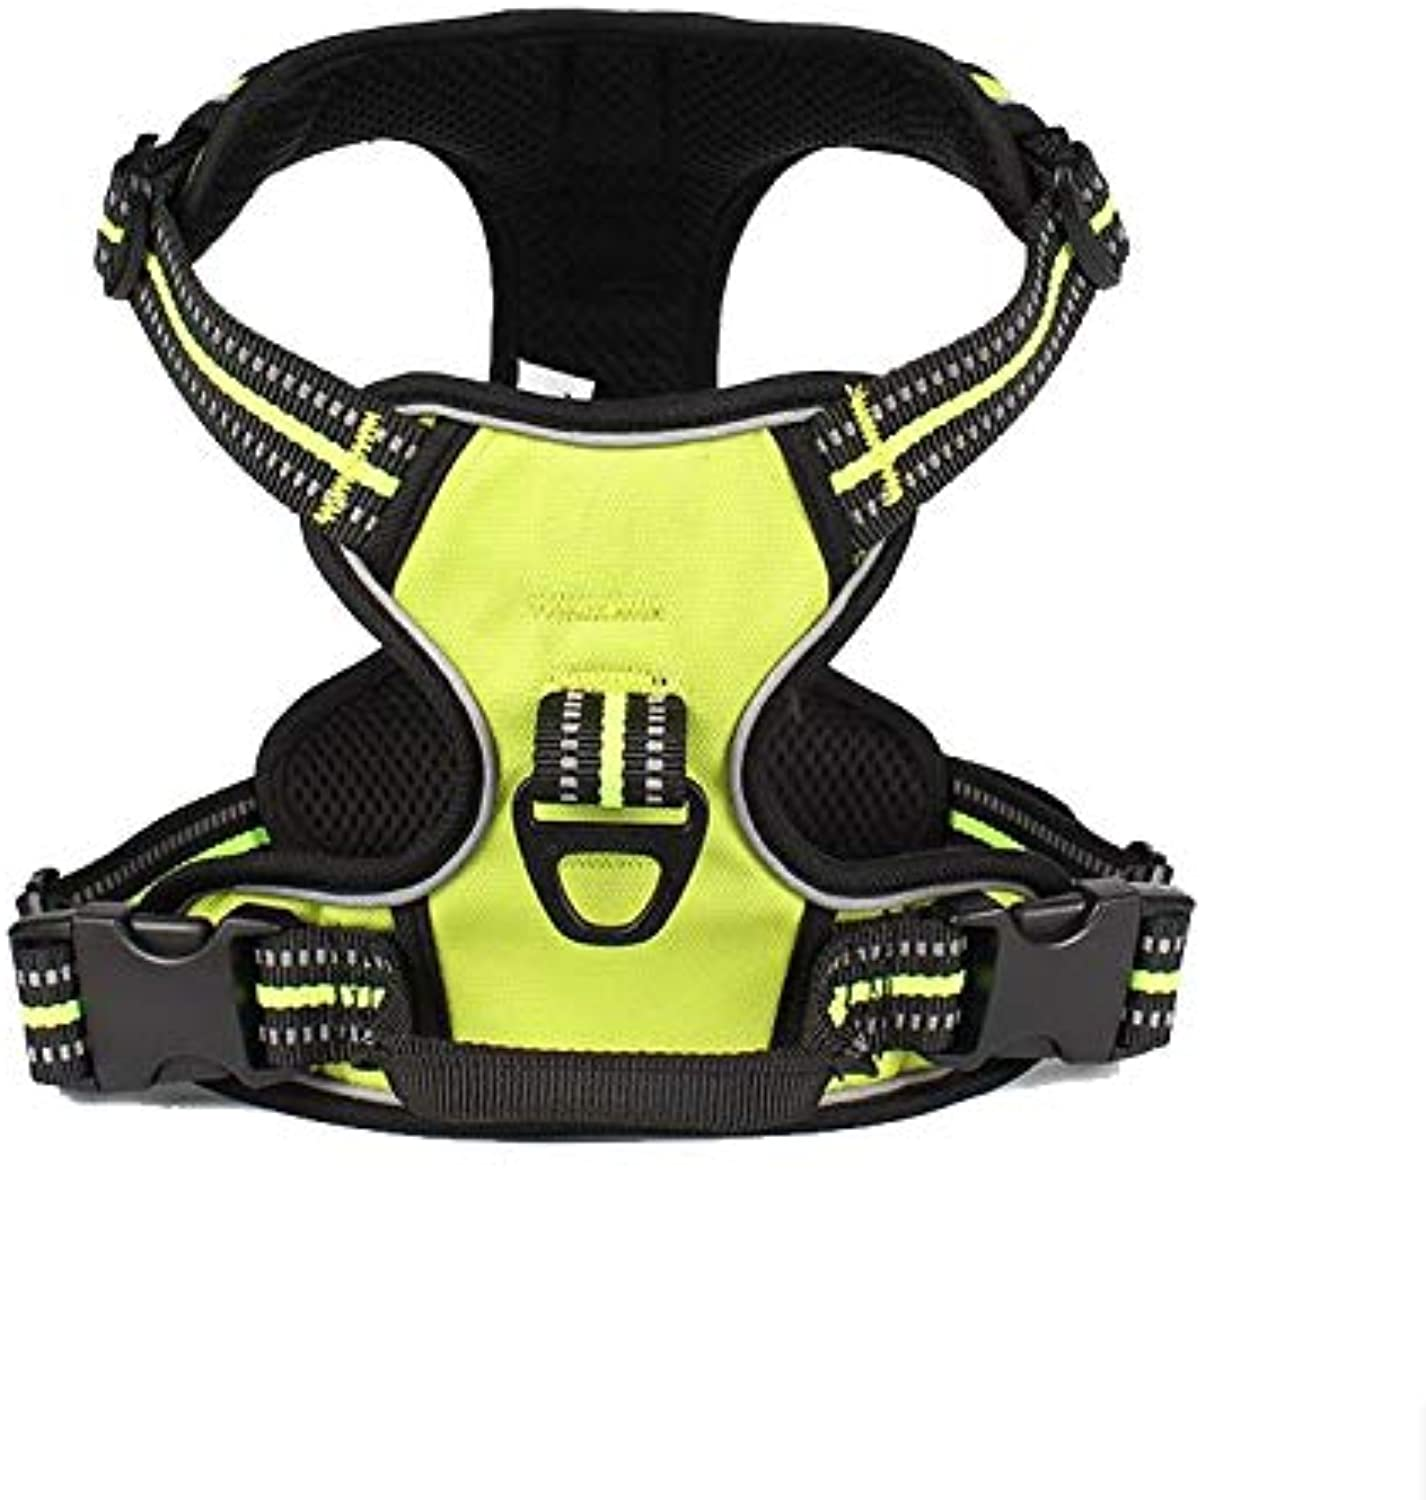 FurryFriends No Pull Dog Harness Pet Adjustable Vest for Outdoor Walking Durable Set Heavy Duty Perfect Daily Training Running Safety Service Dog Vest Harness Quality Nylon (Large, Lime Green)